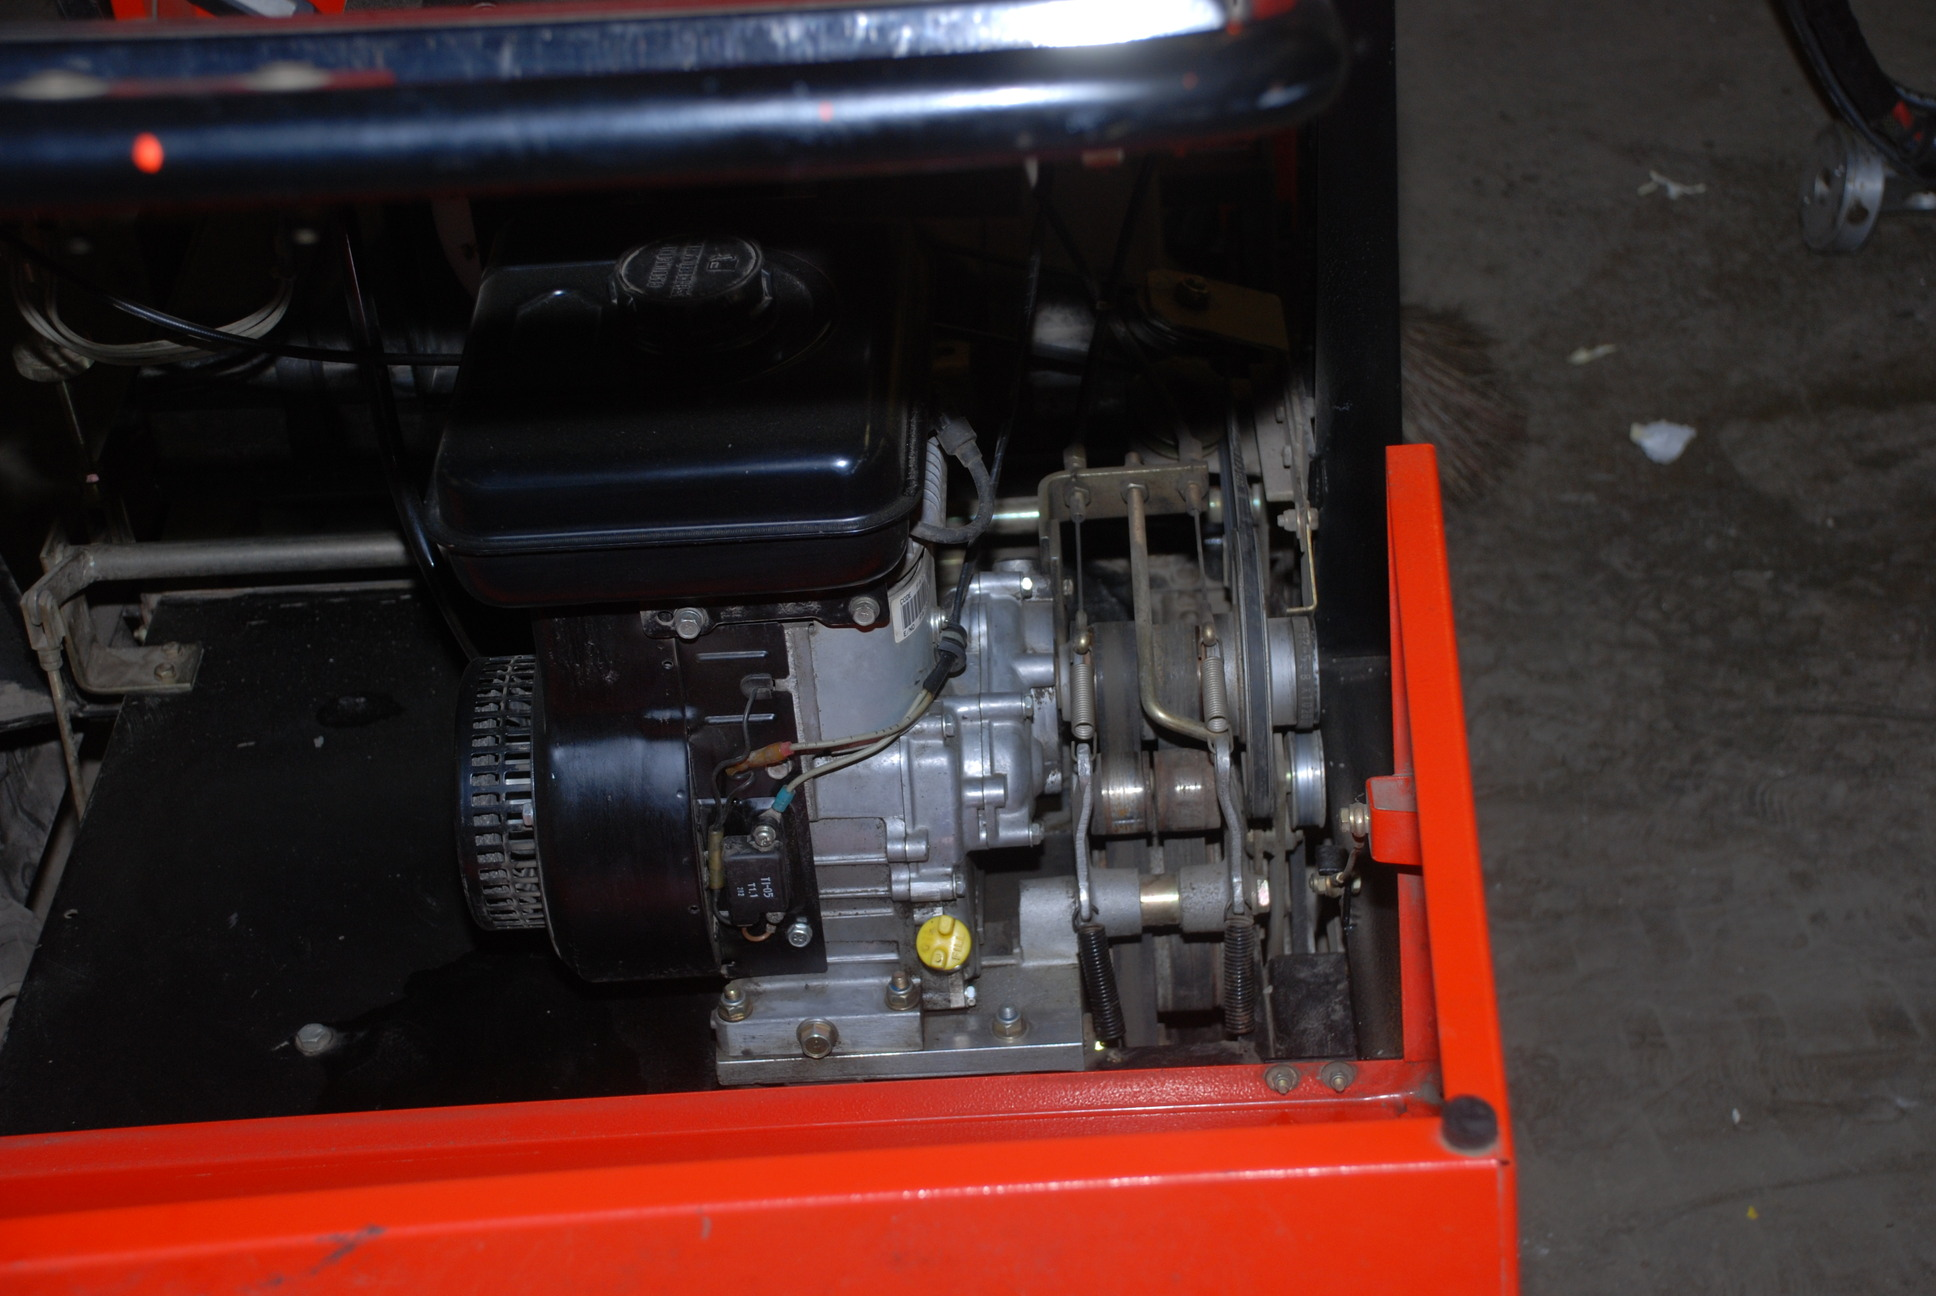 Images of Kawasaki Gas Engine